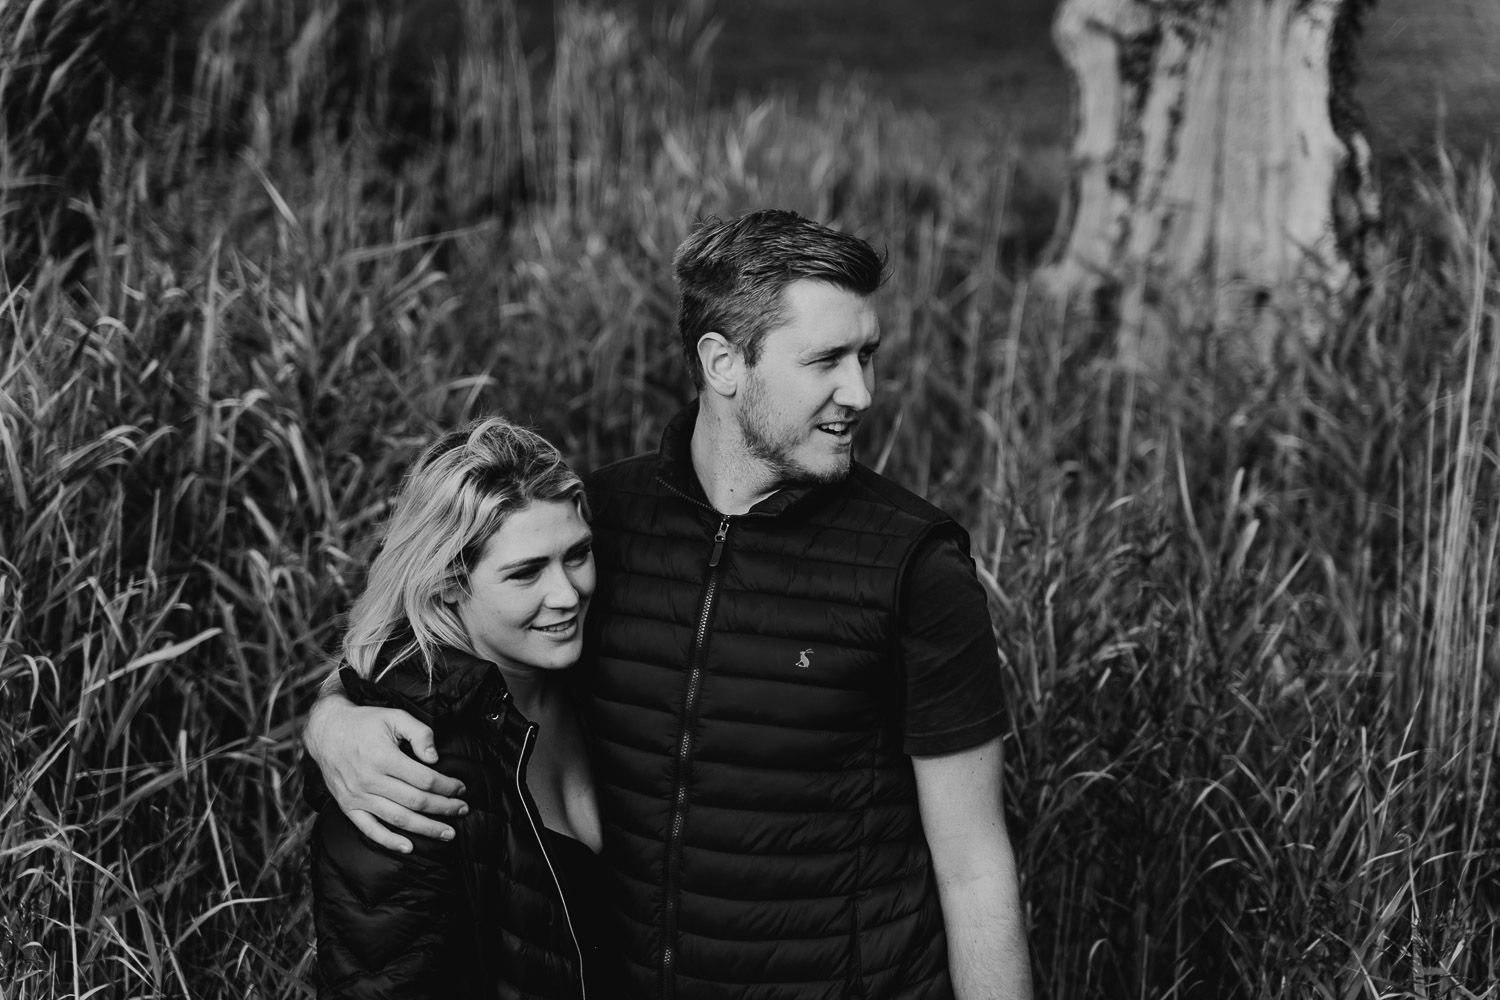 Black and white image, couple cuddle up together in long grass. Katherine and her Camera engagement photoshoot.